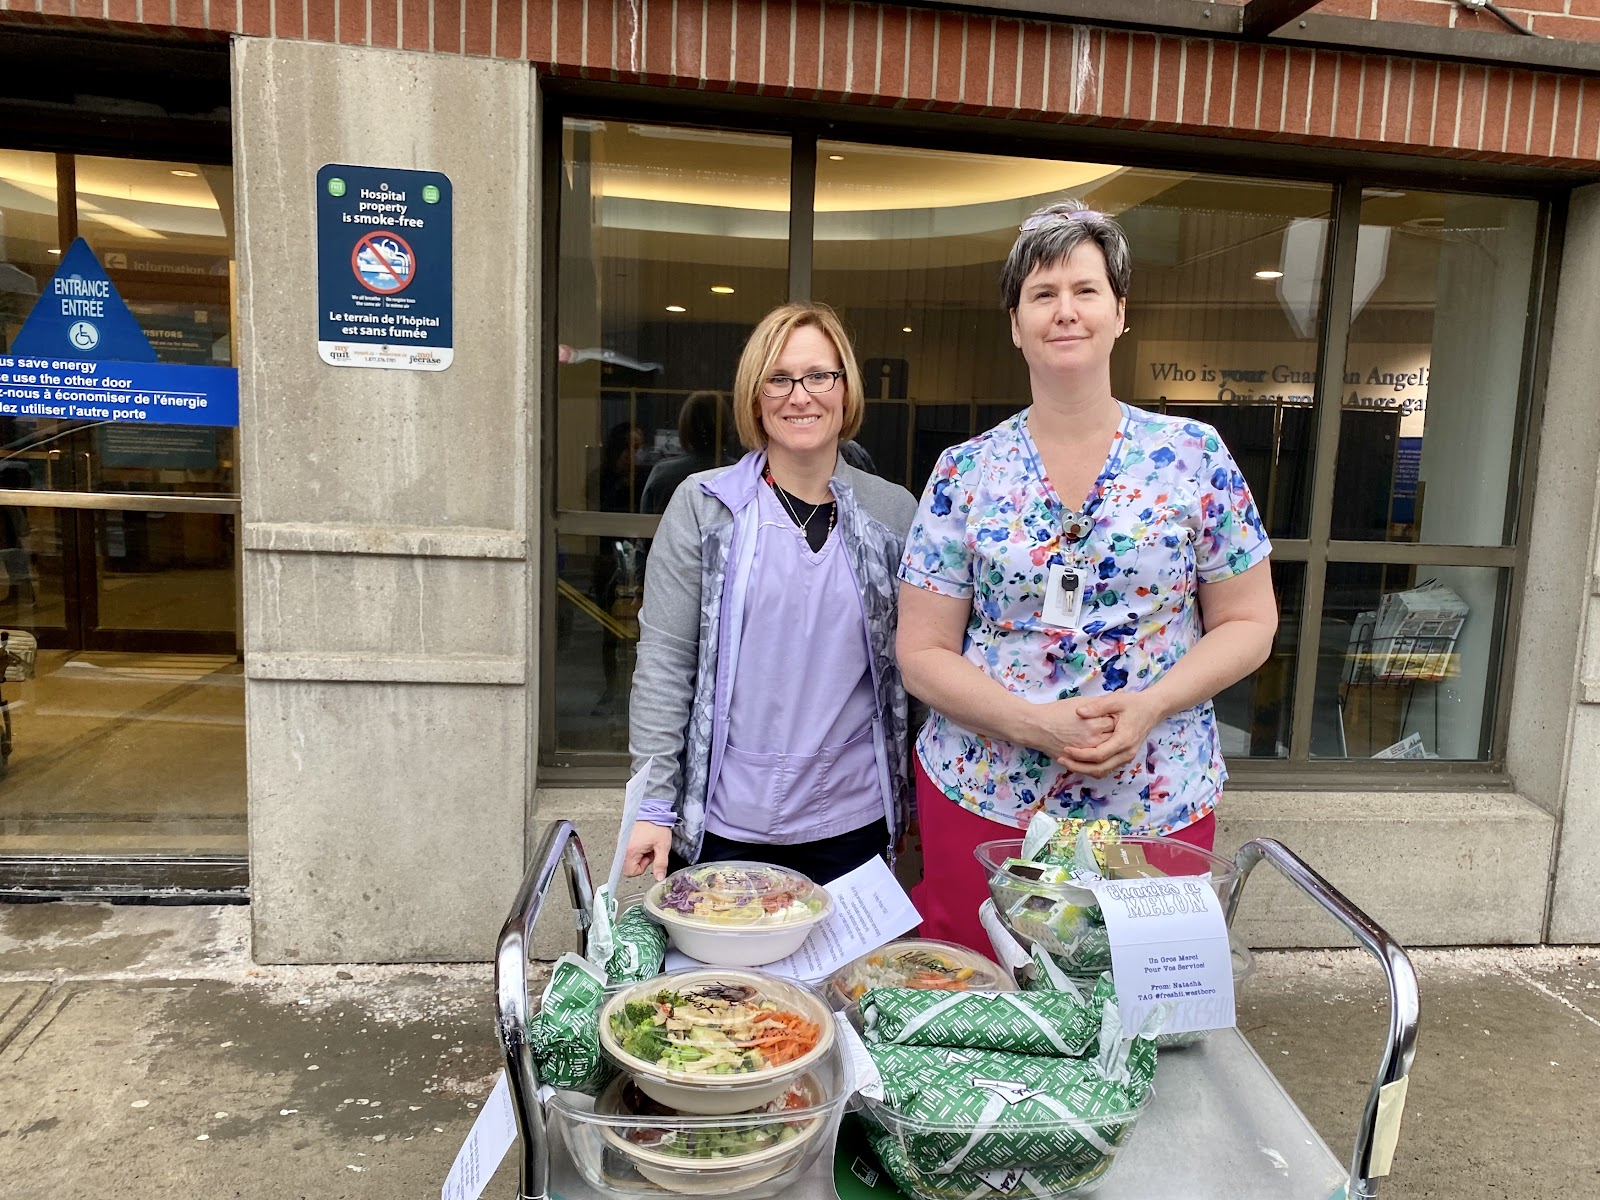 Two middle-aged women serving wrapped food